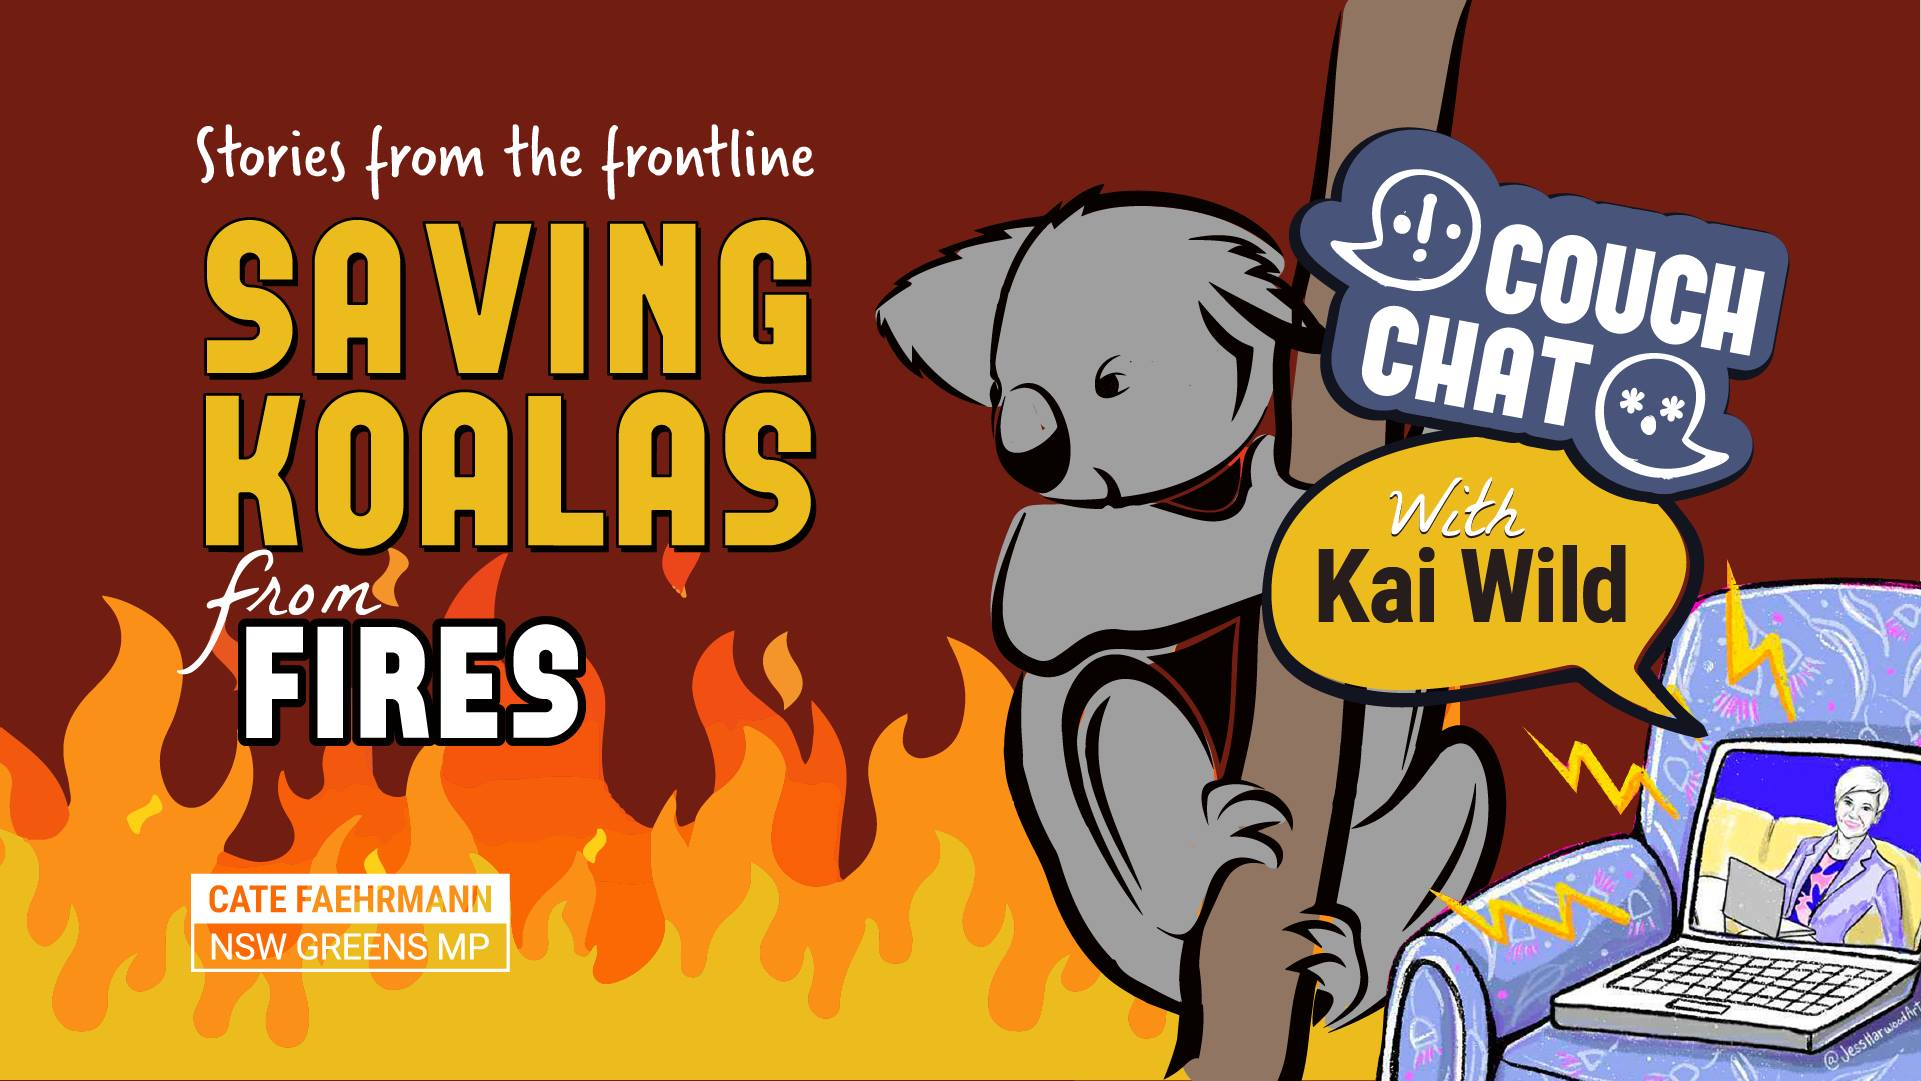 Saving Koalas from Fires with Kai Wild